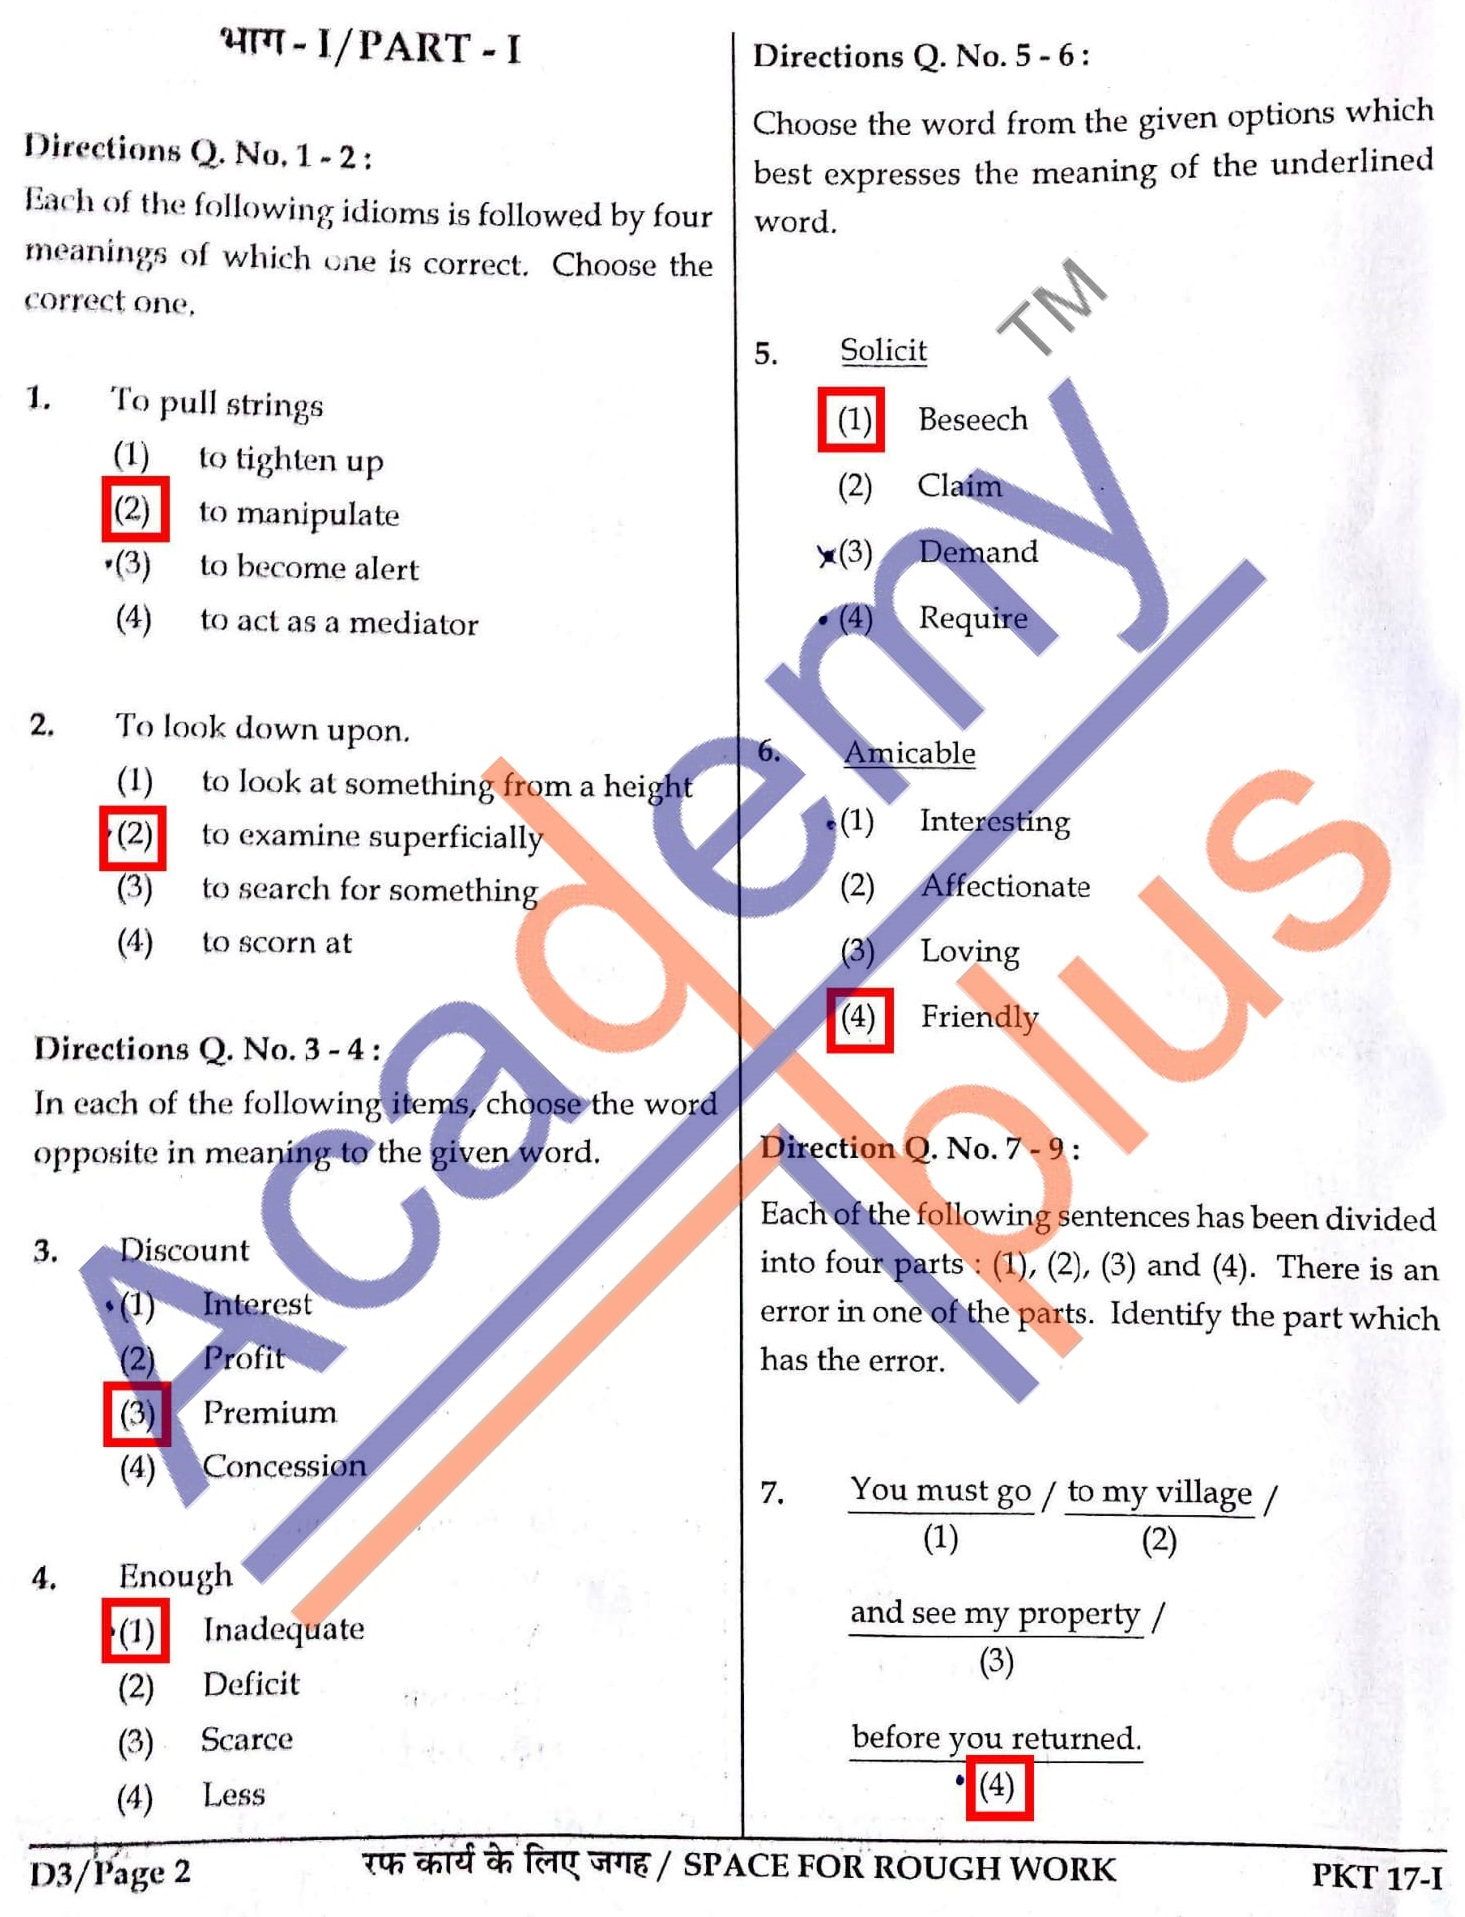 kvs tgt answer key 2017 download official question paper solution